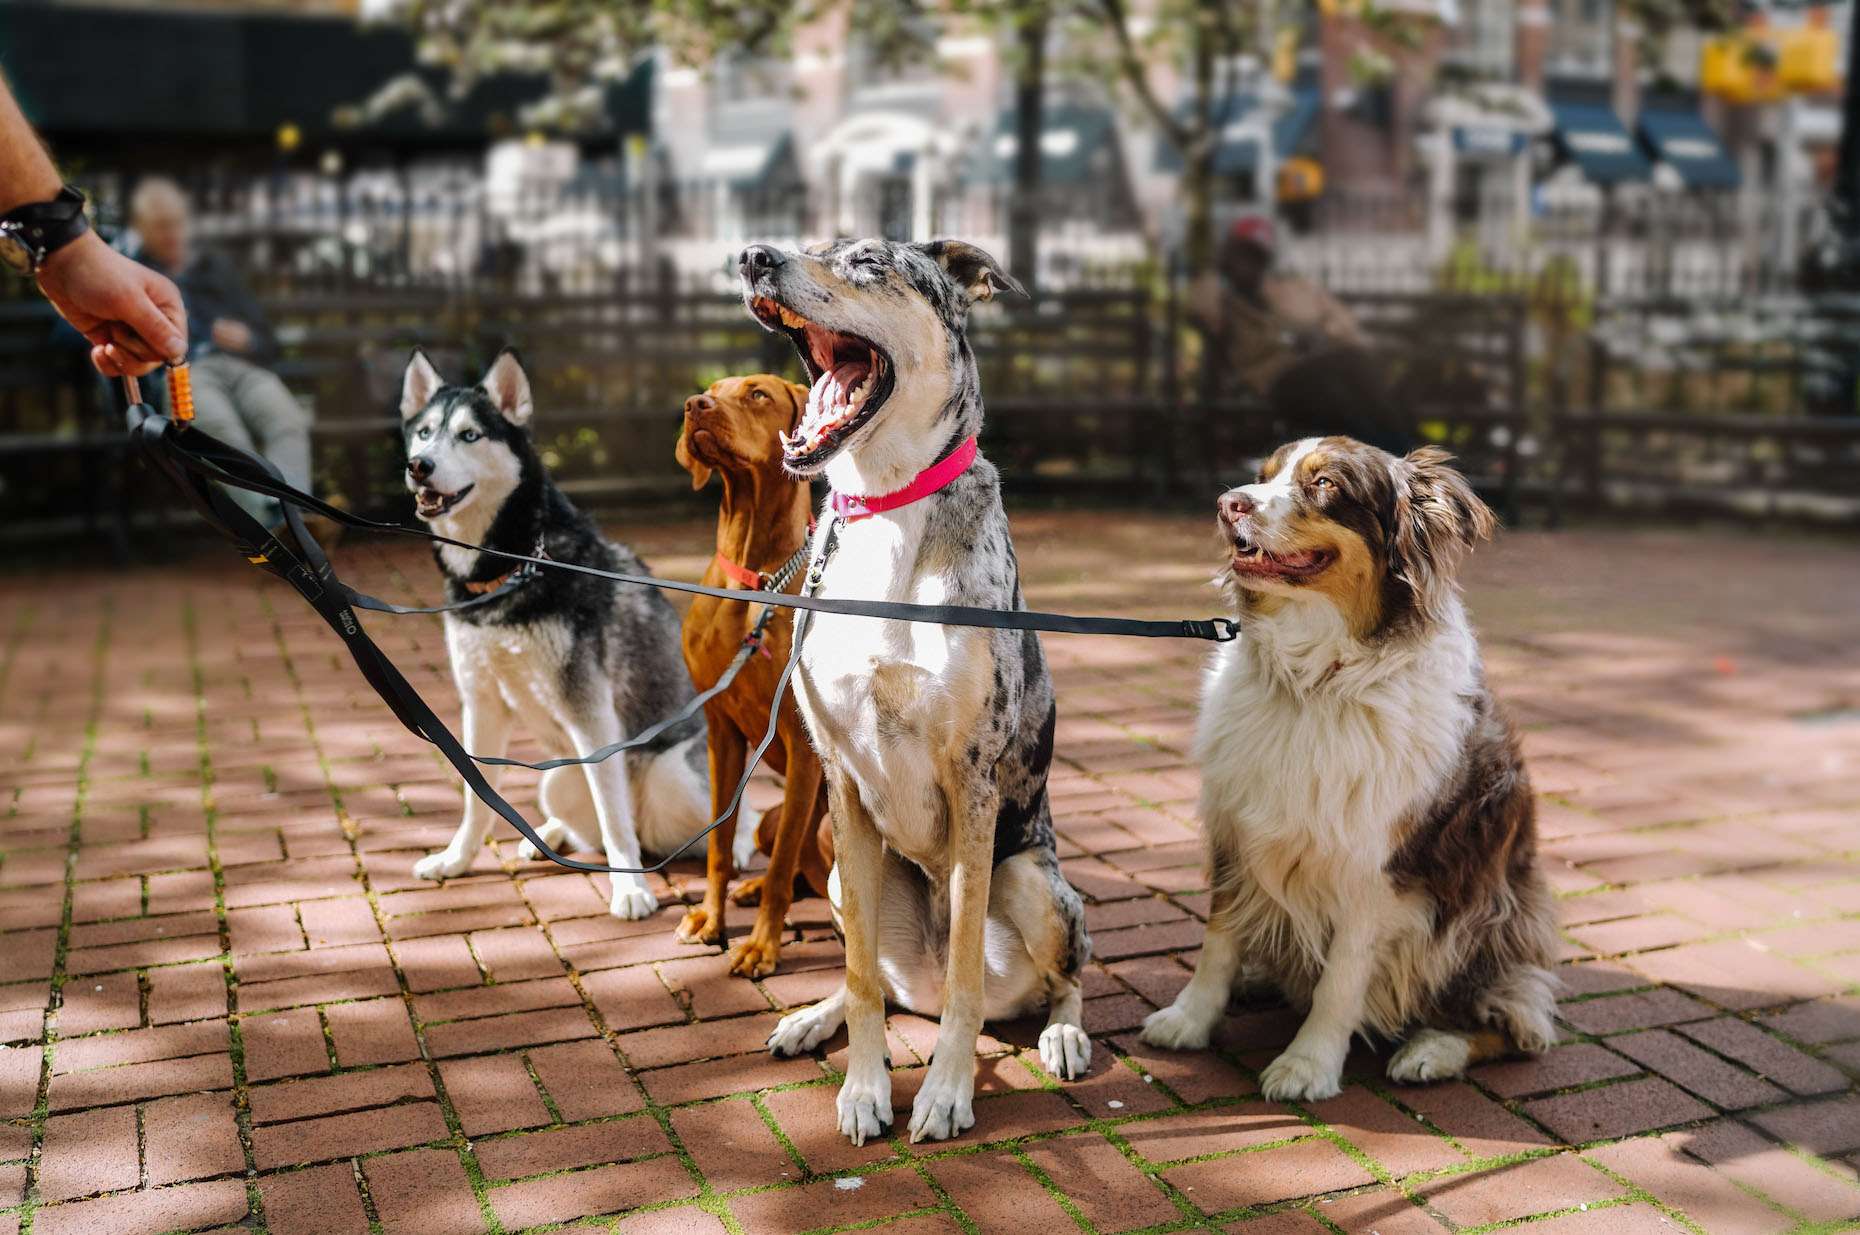 Join the PACK - Ready to take a walk?